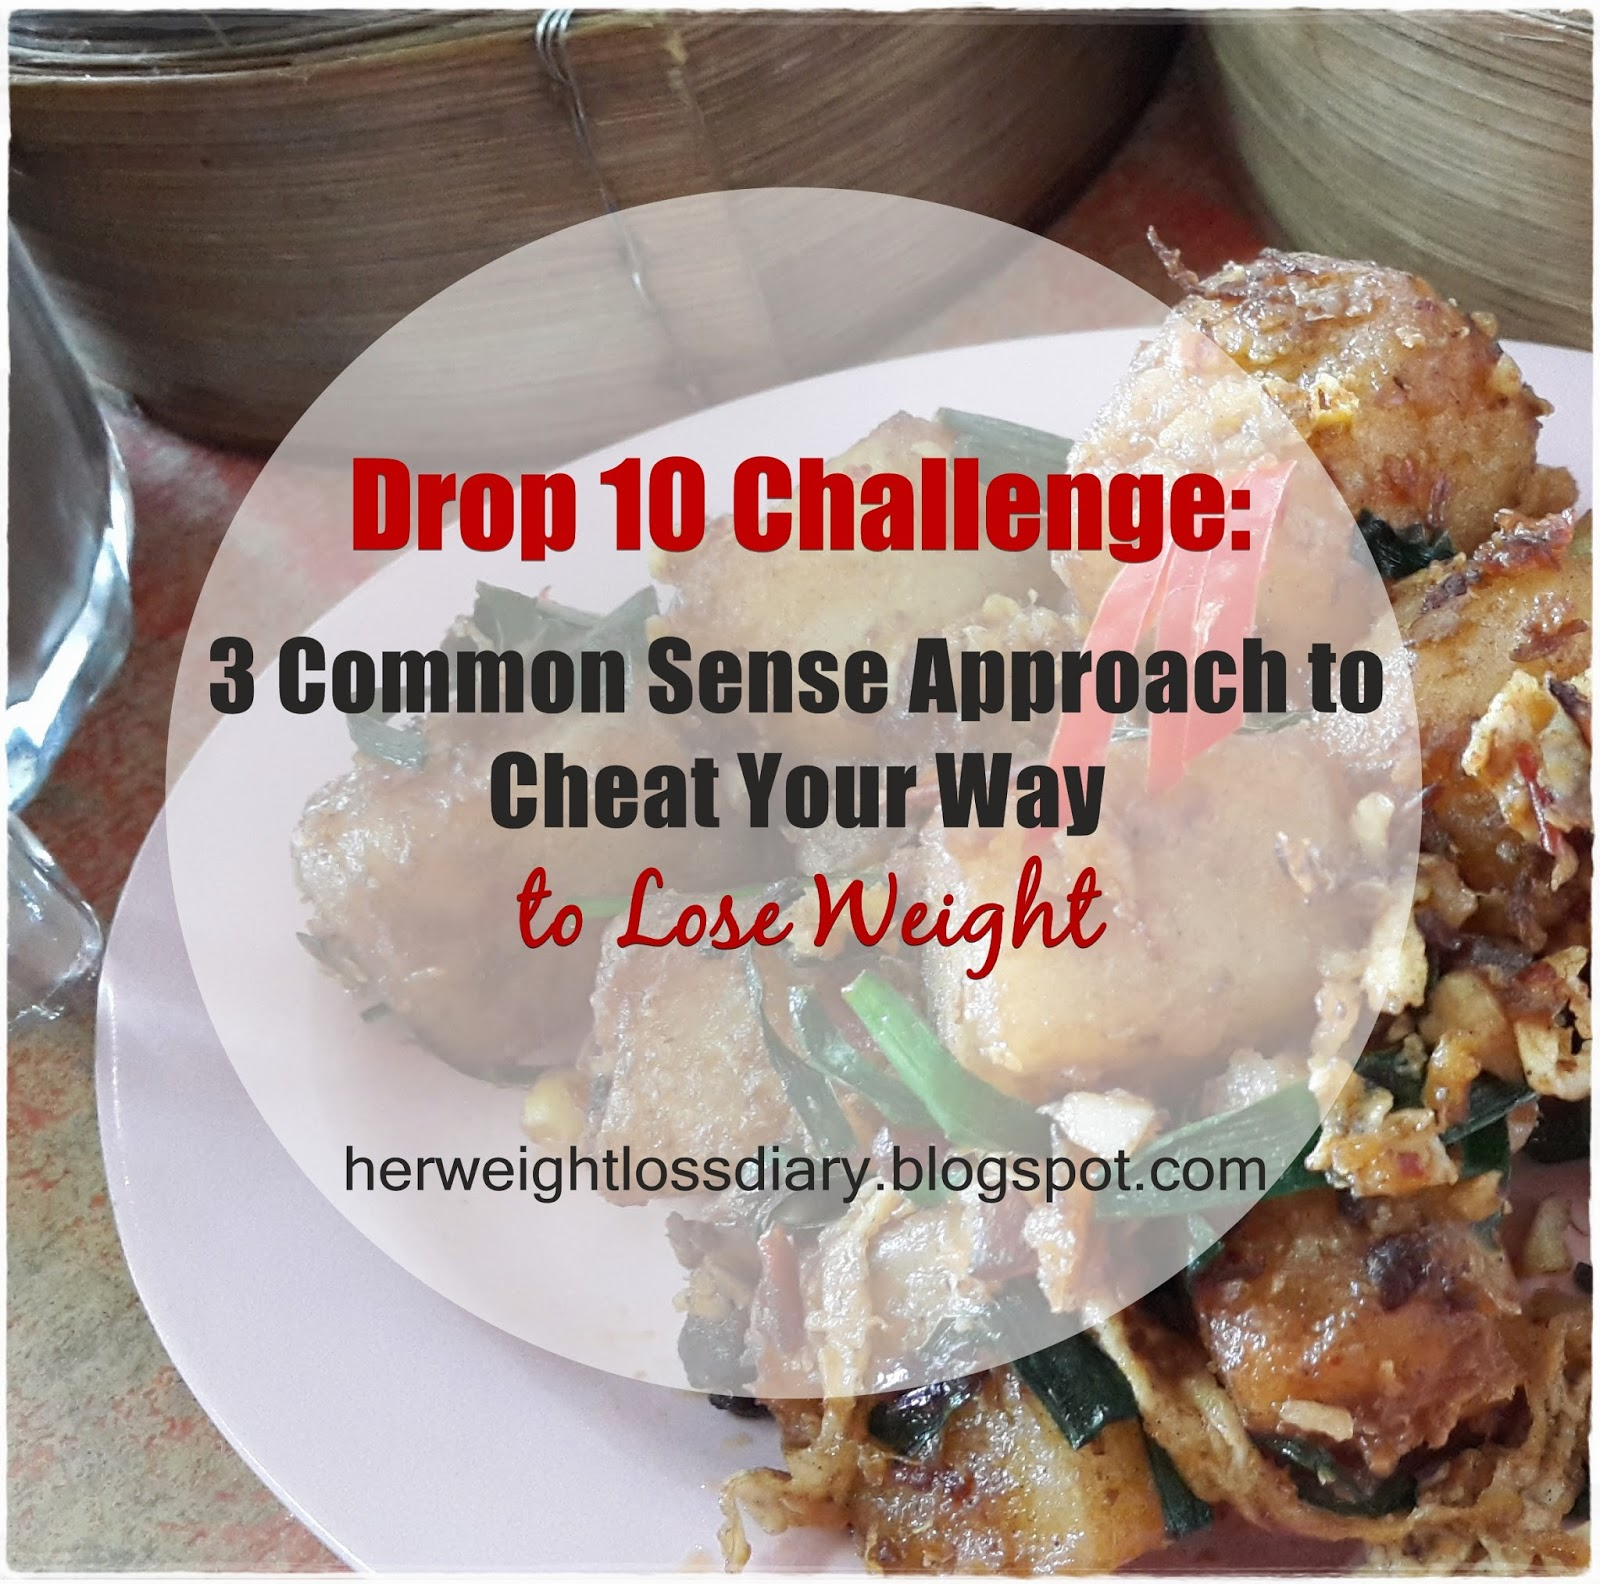 Drop 10 Challenge: 3 Common Sense Approach to Cheat Your Way to Lose Weight